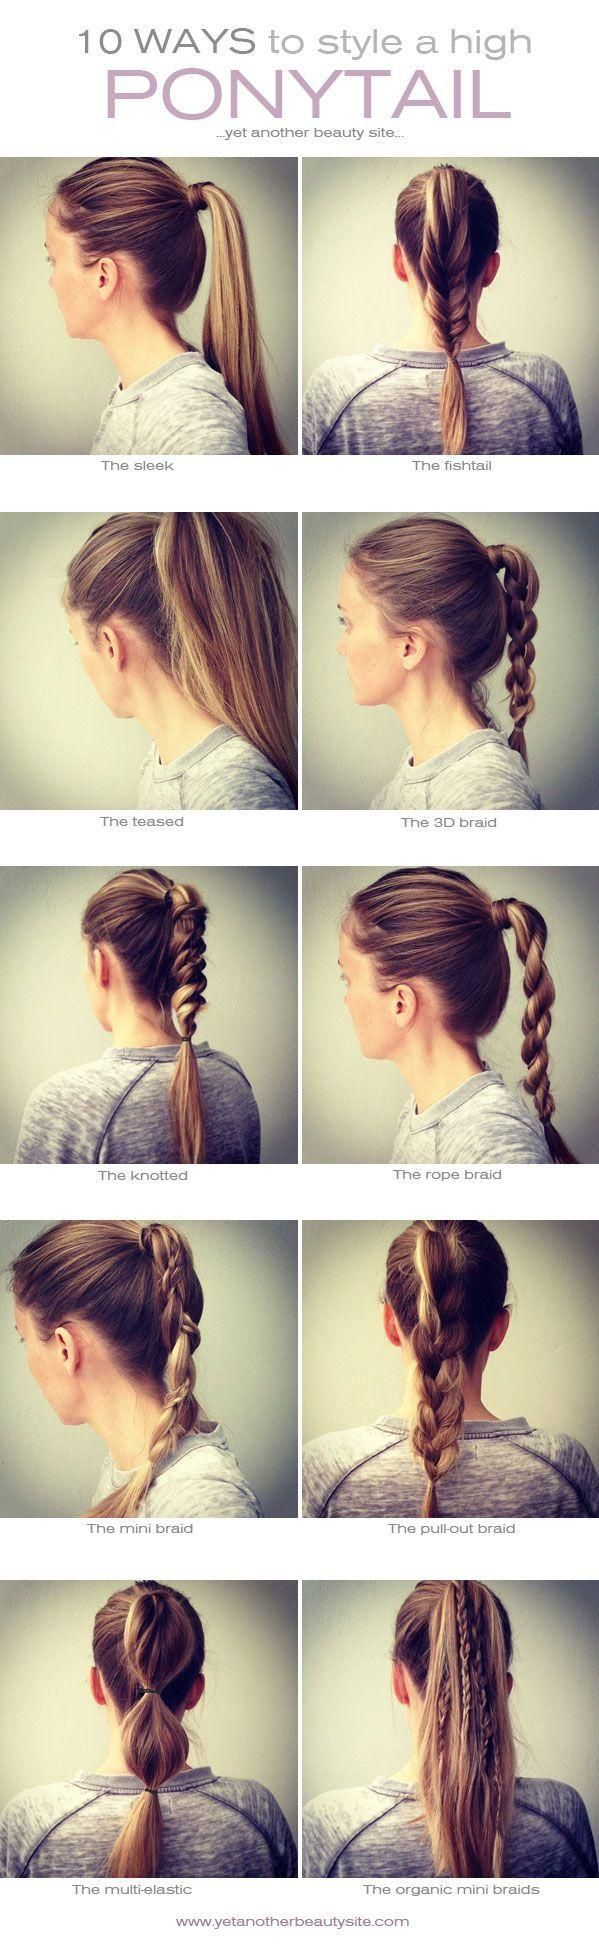 10 ways to style a high ponytail Hairstyle, this is my